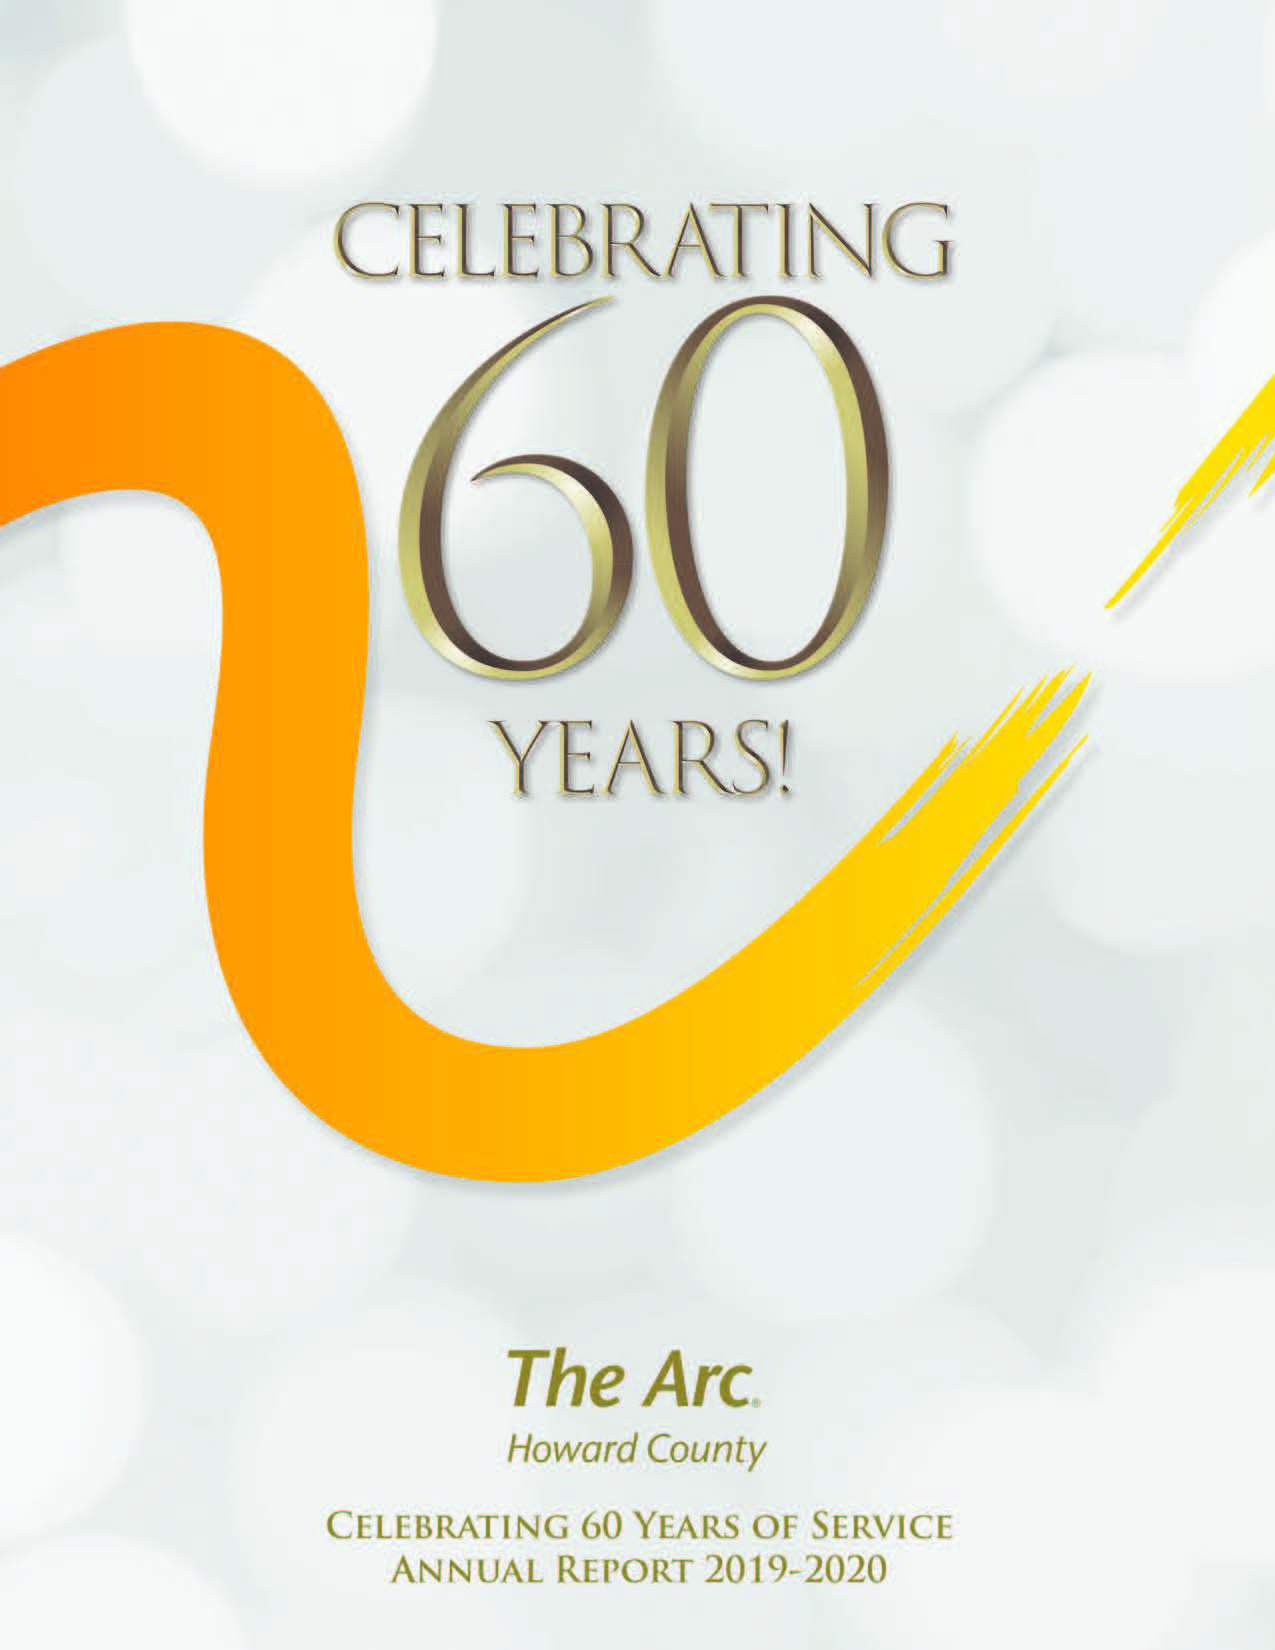 The Arc of Howard County Annual Report-2019-2020: Celebrating 60 Years!